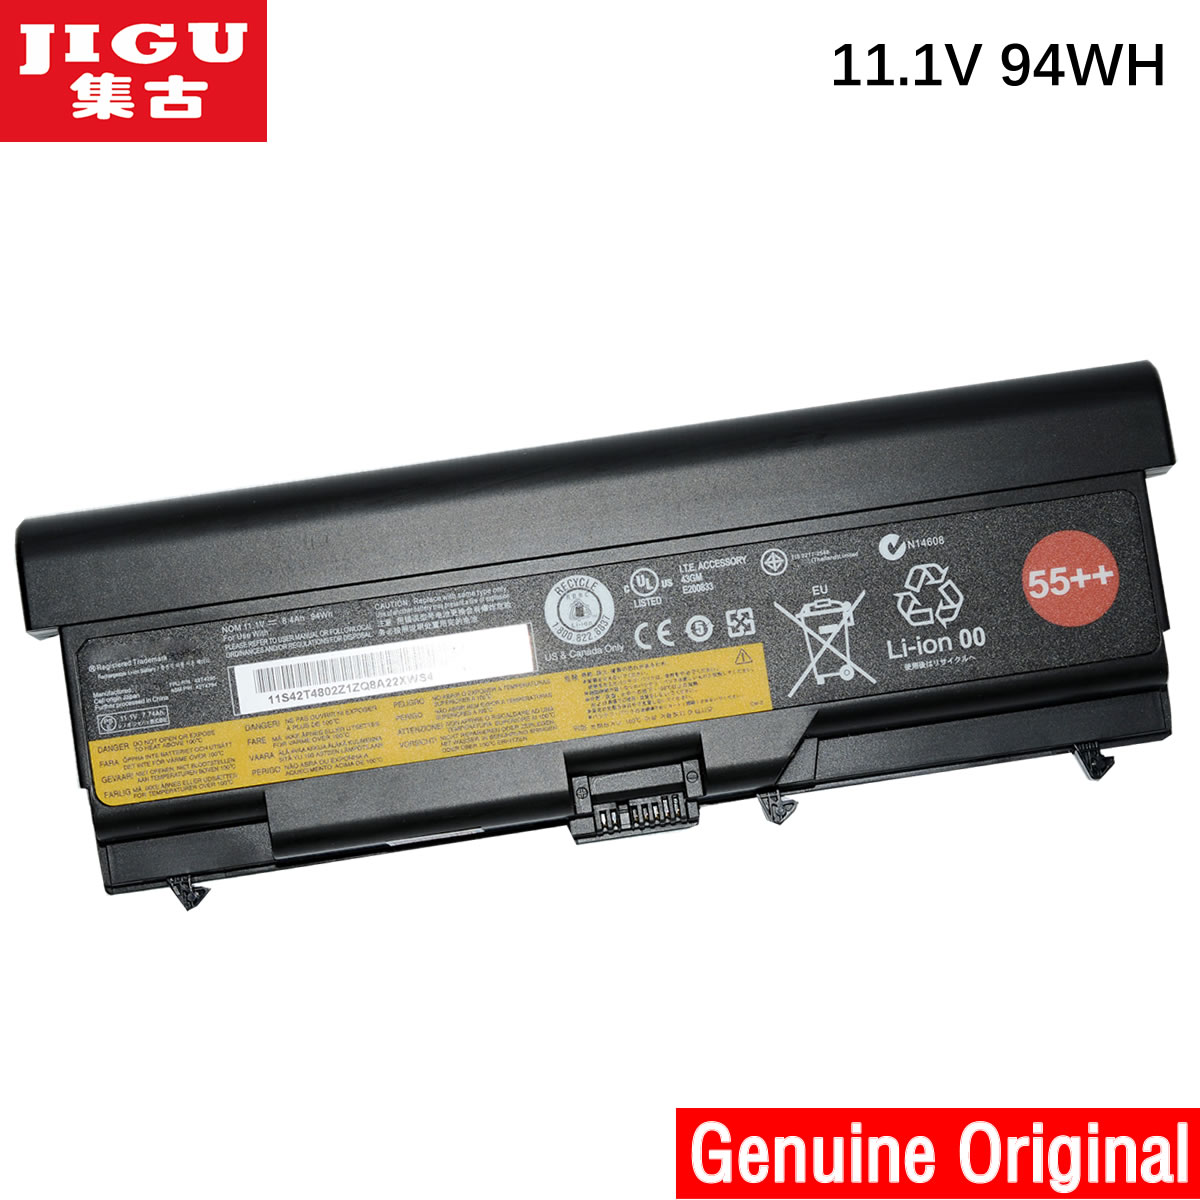 JIGU Original laptop Battery For Lenovo SL400 SL410 SL410k SL500 SL510 T410 T410i T420 T420i T520 W510 W520 9cells jigu original laptop battery for lenovo for thinkpad sl400 sl410 sl410k sl500 sl510 t410 t410i t420 t420i t520 w510 w520